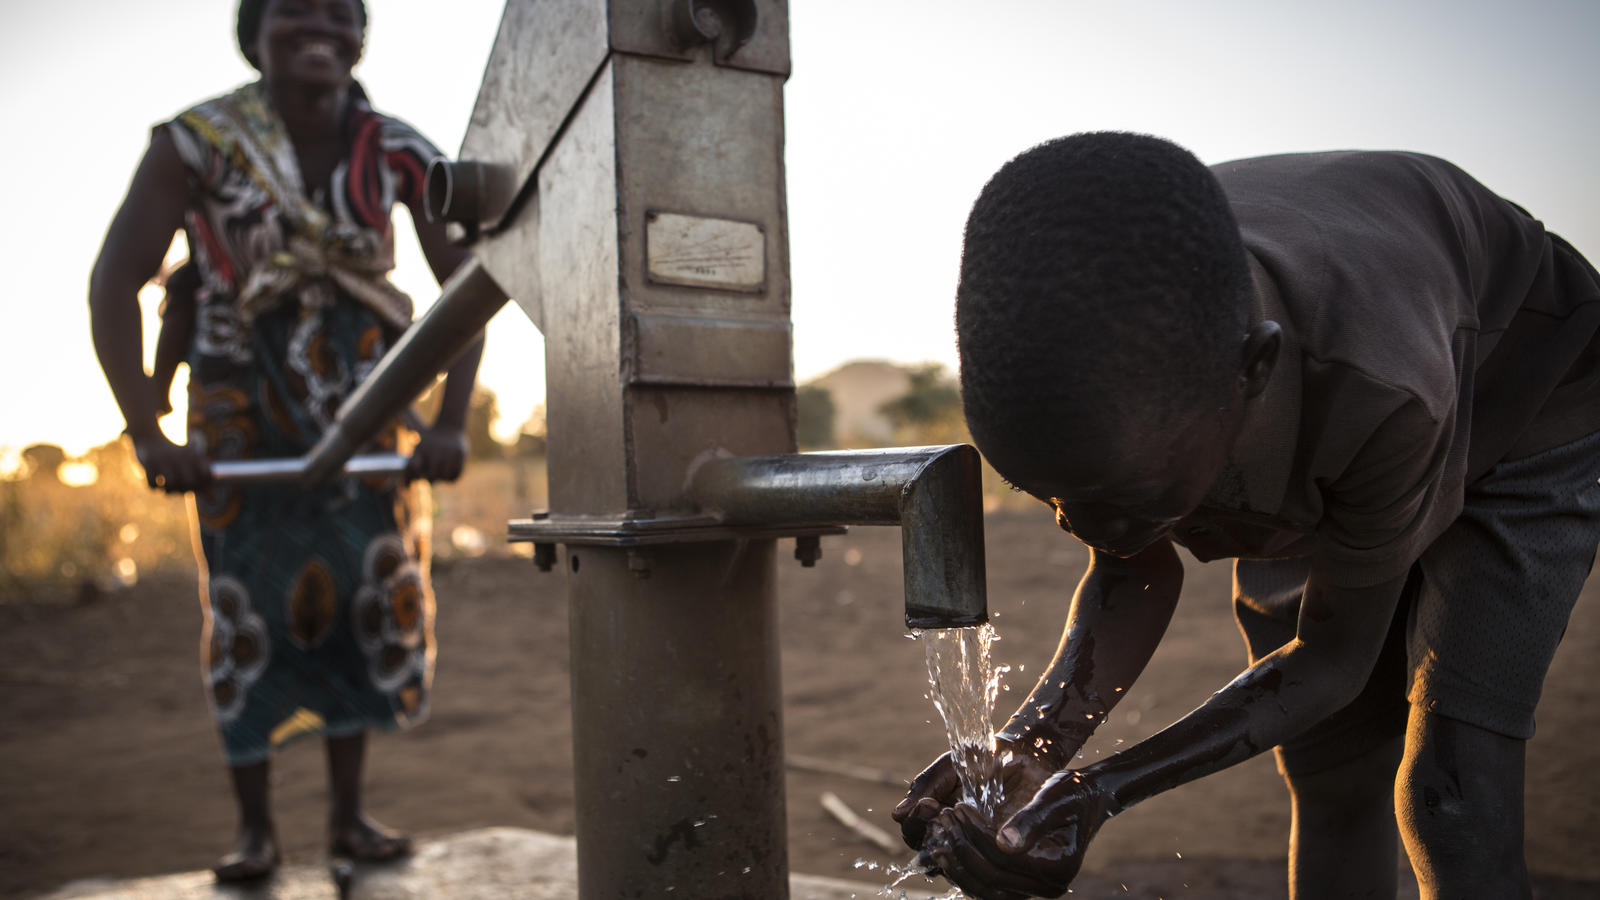 Karim drinks clean water from a hand pump in Malawi.